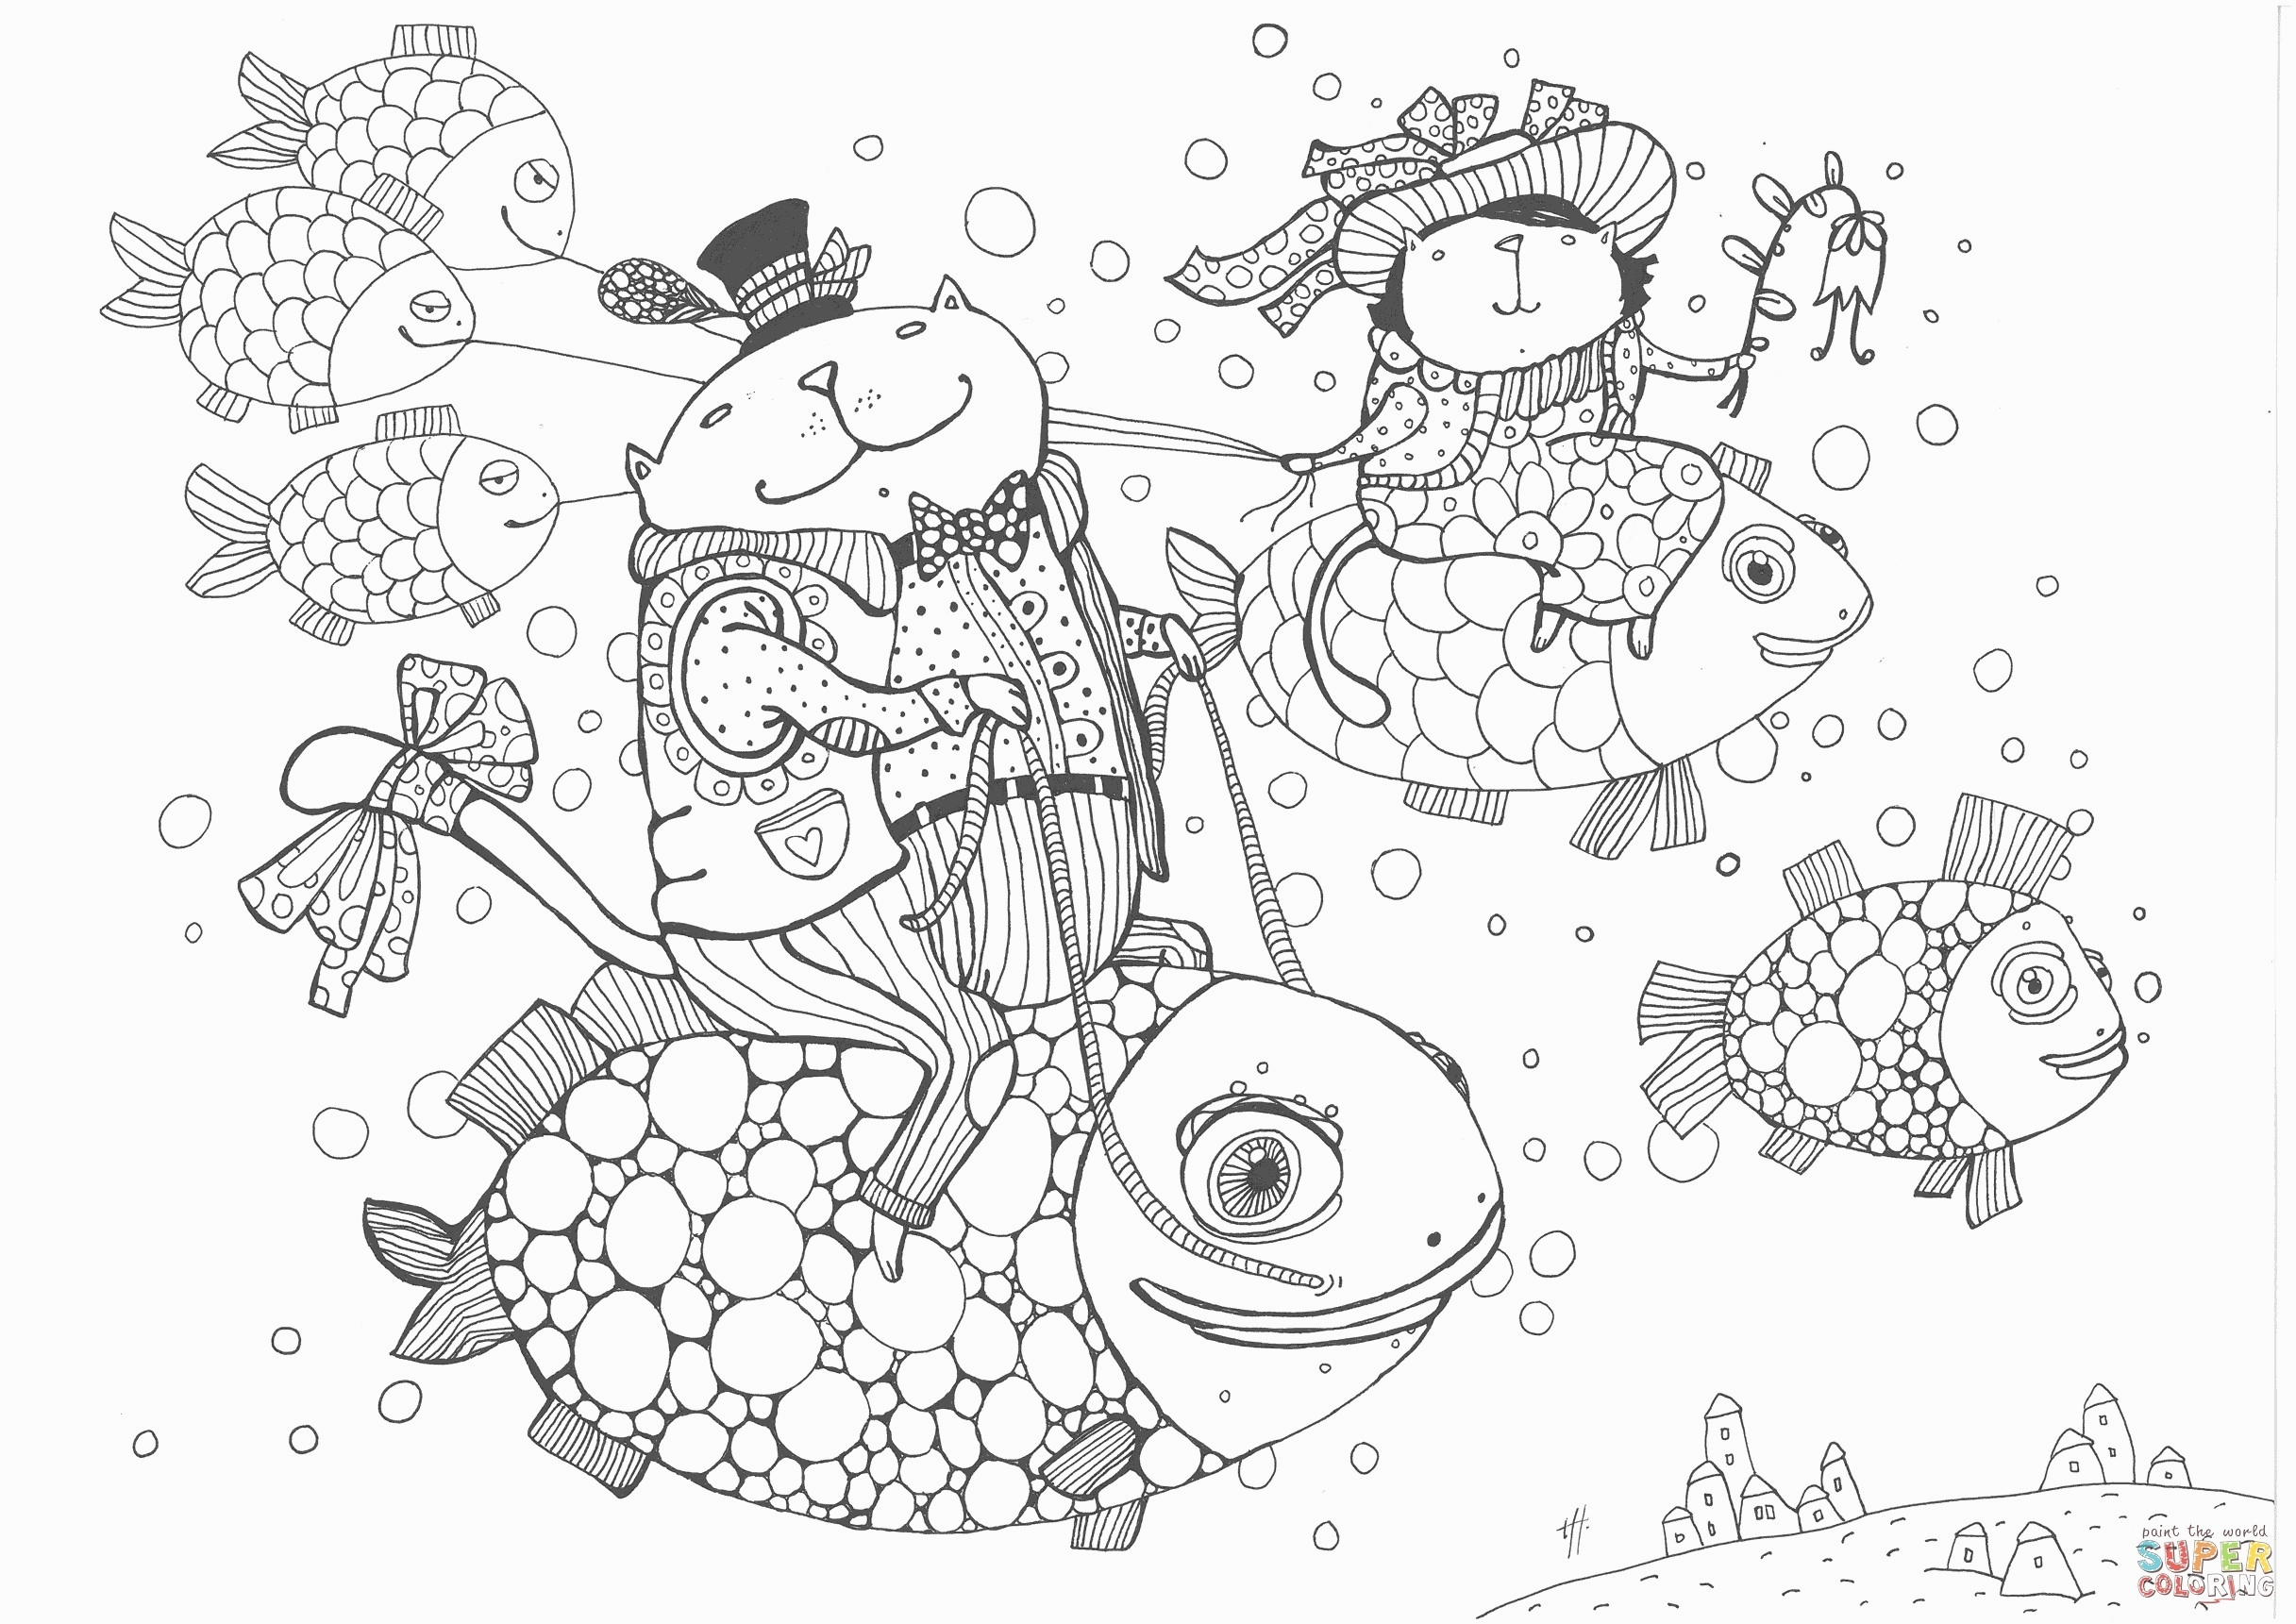 special olympics coloring pages Collection-Winter Printables Coloring Pages Inspirational Olympic Coloring Sheets Printable Coloring Pages Winter Hat Coloring 6-q